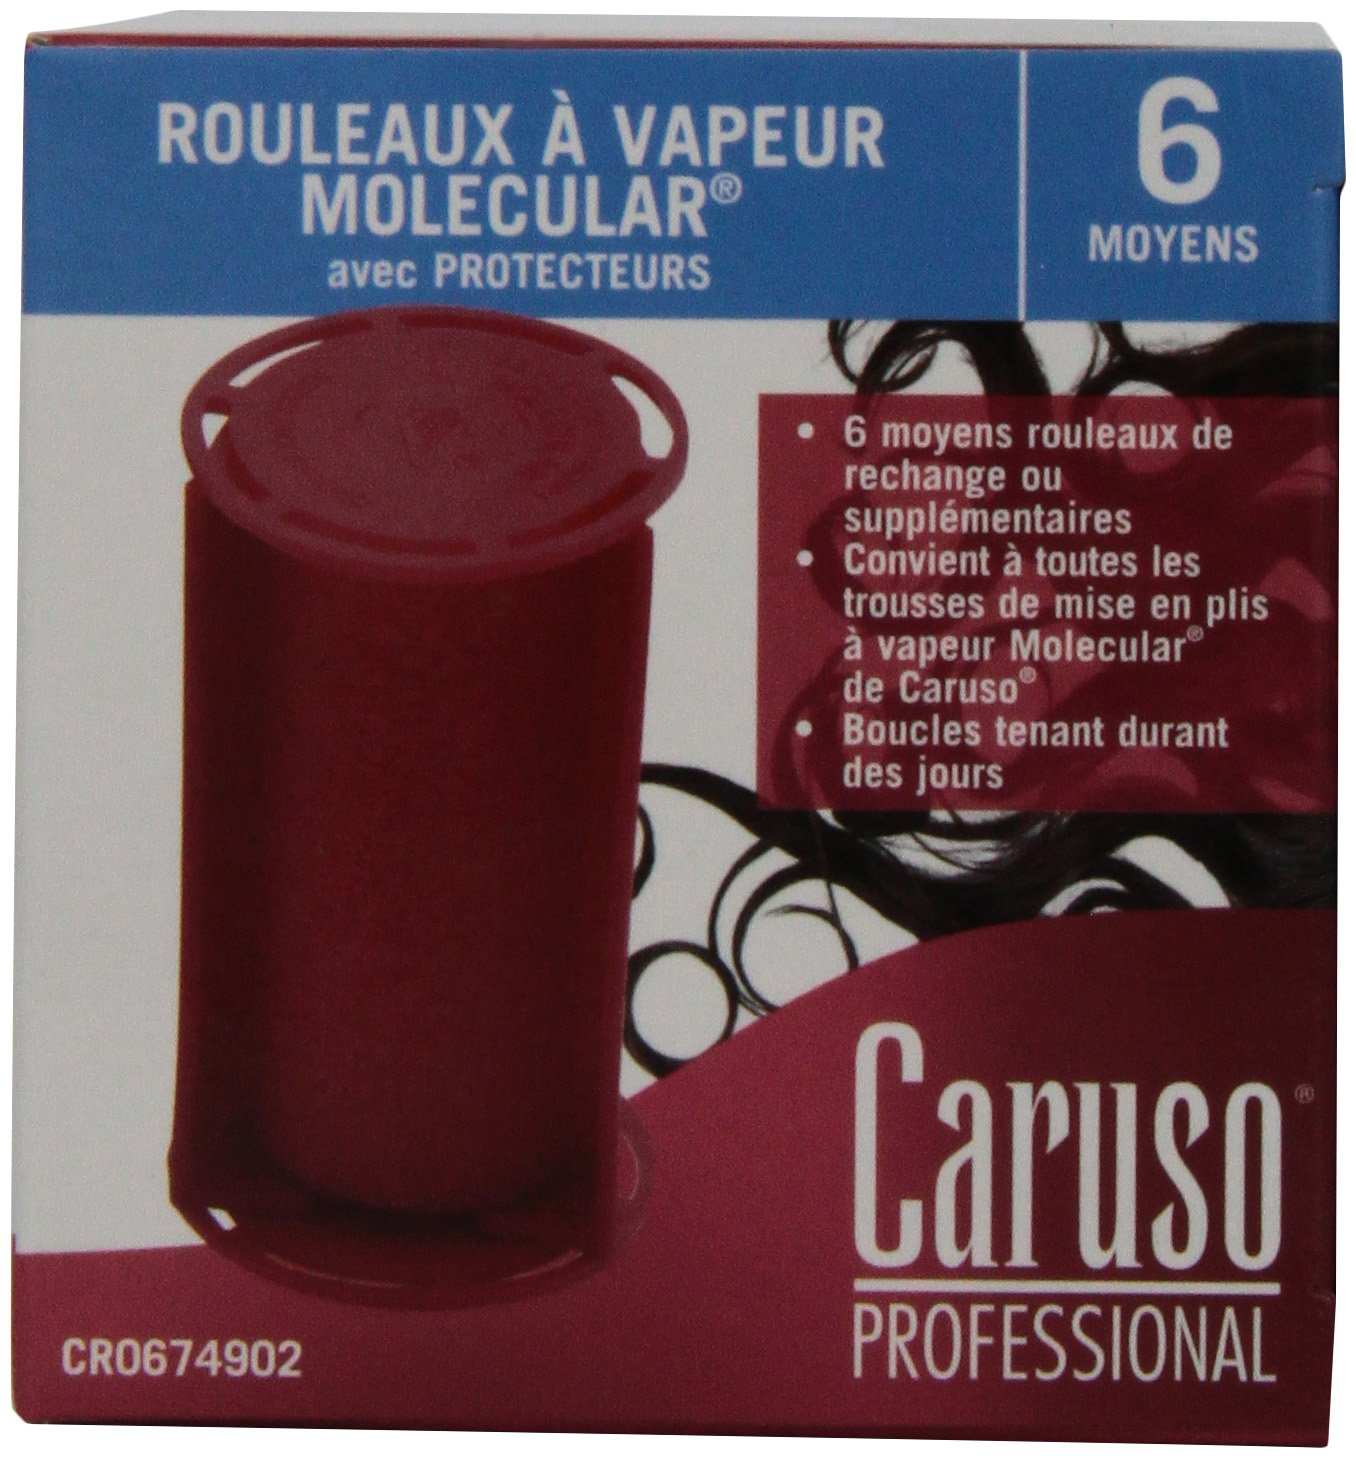 Caruso Professional Molecular Steam Rollers with Shields, Medium (6-Pack) by Caruso (Image #2)